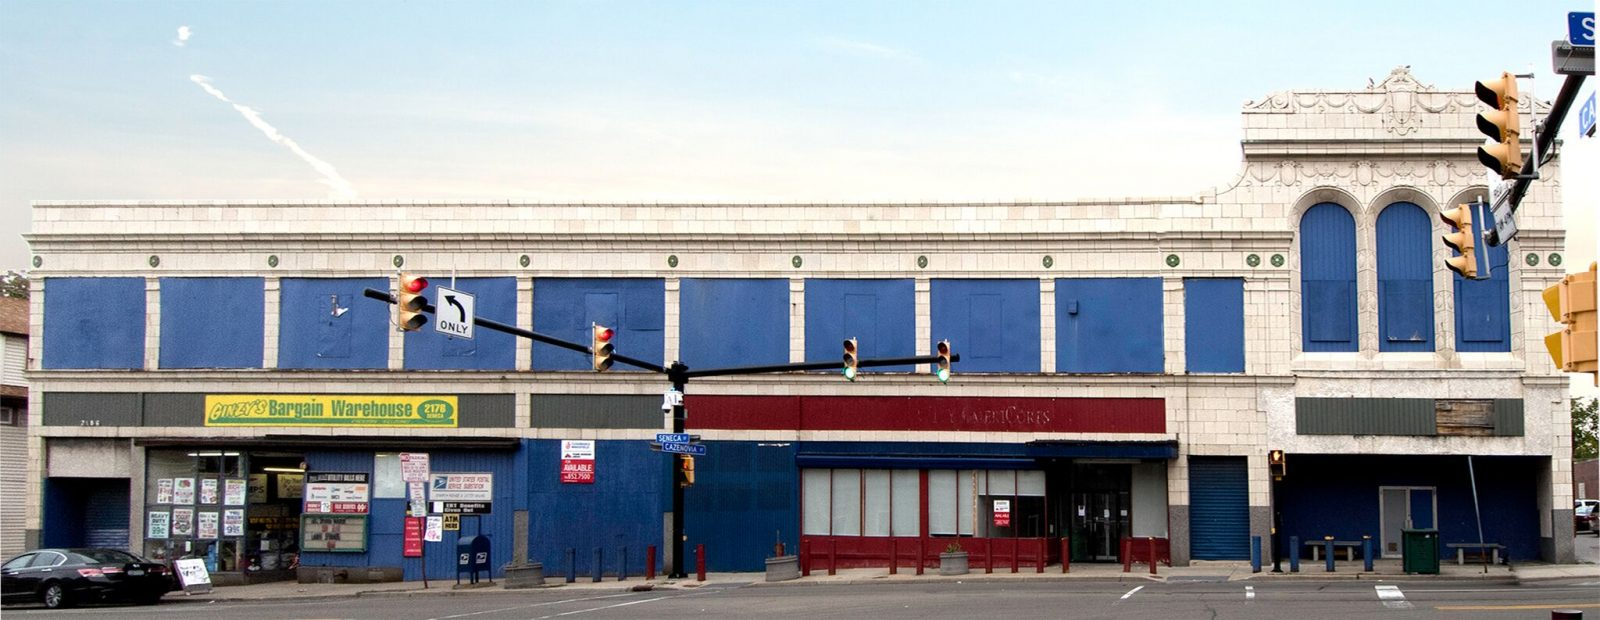 The exterior of Shea's Seneca Theatre today. (News file photo)